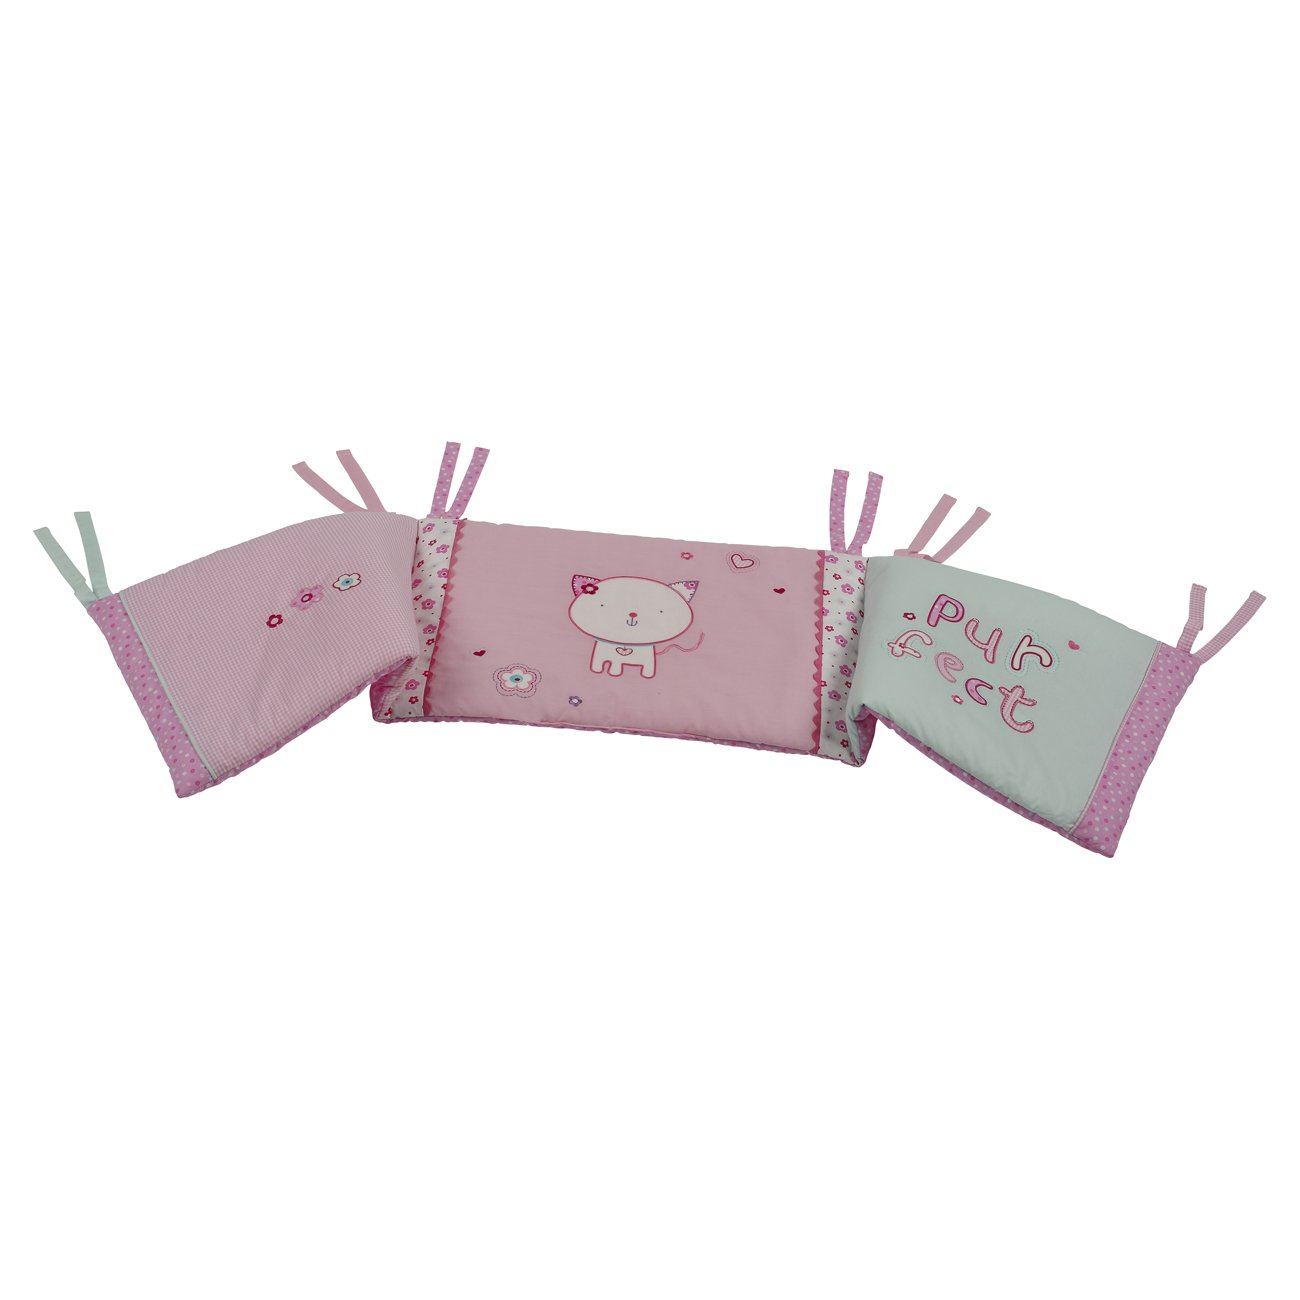 Bed-e-Byes Purfect Cot/Cotbed Bumper 280/177/28